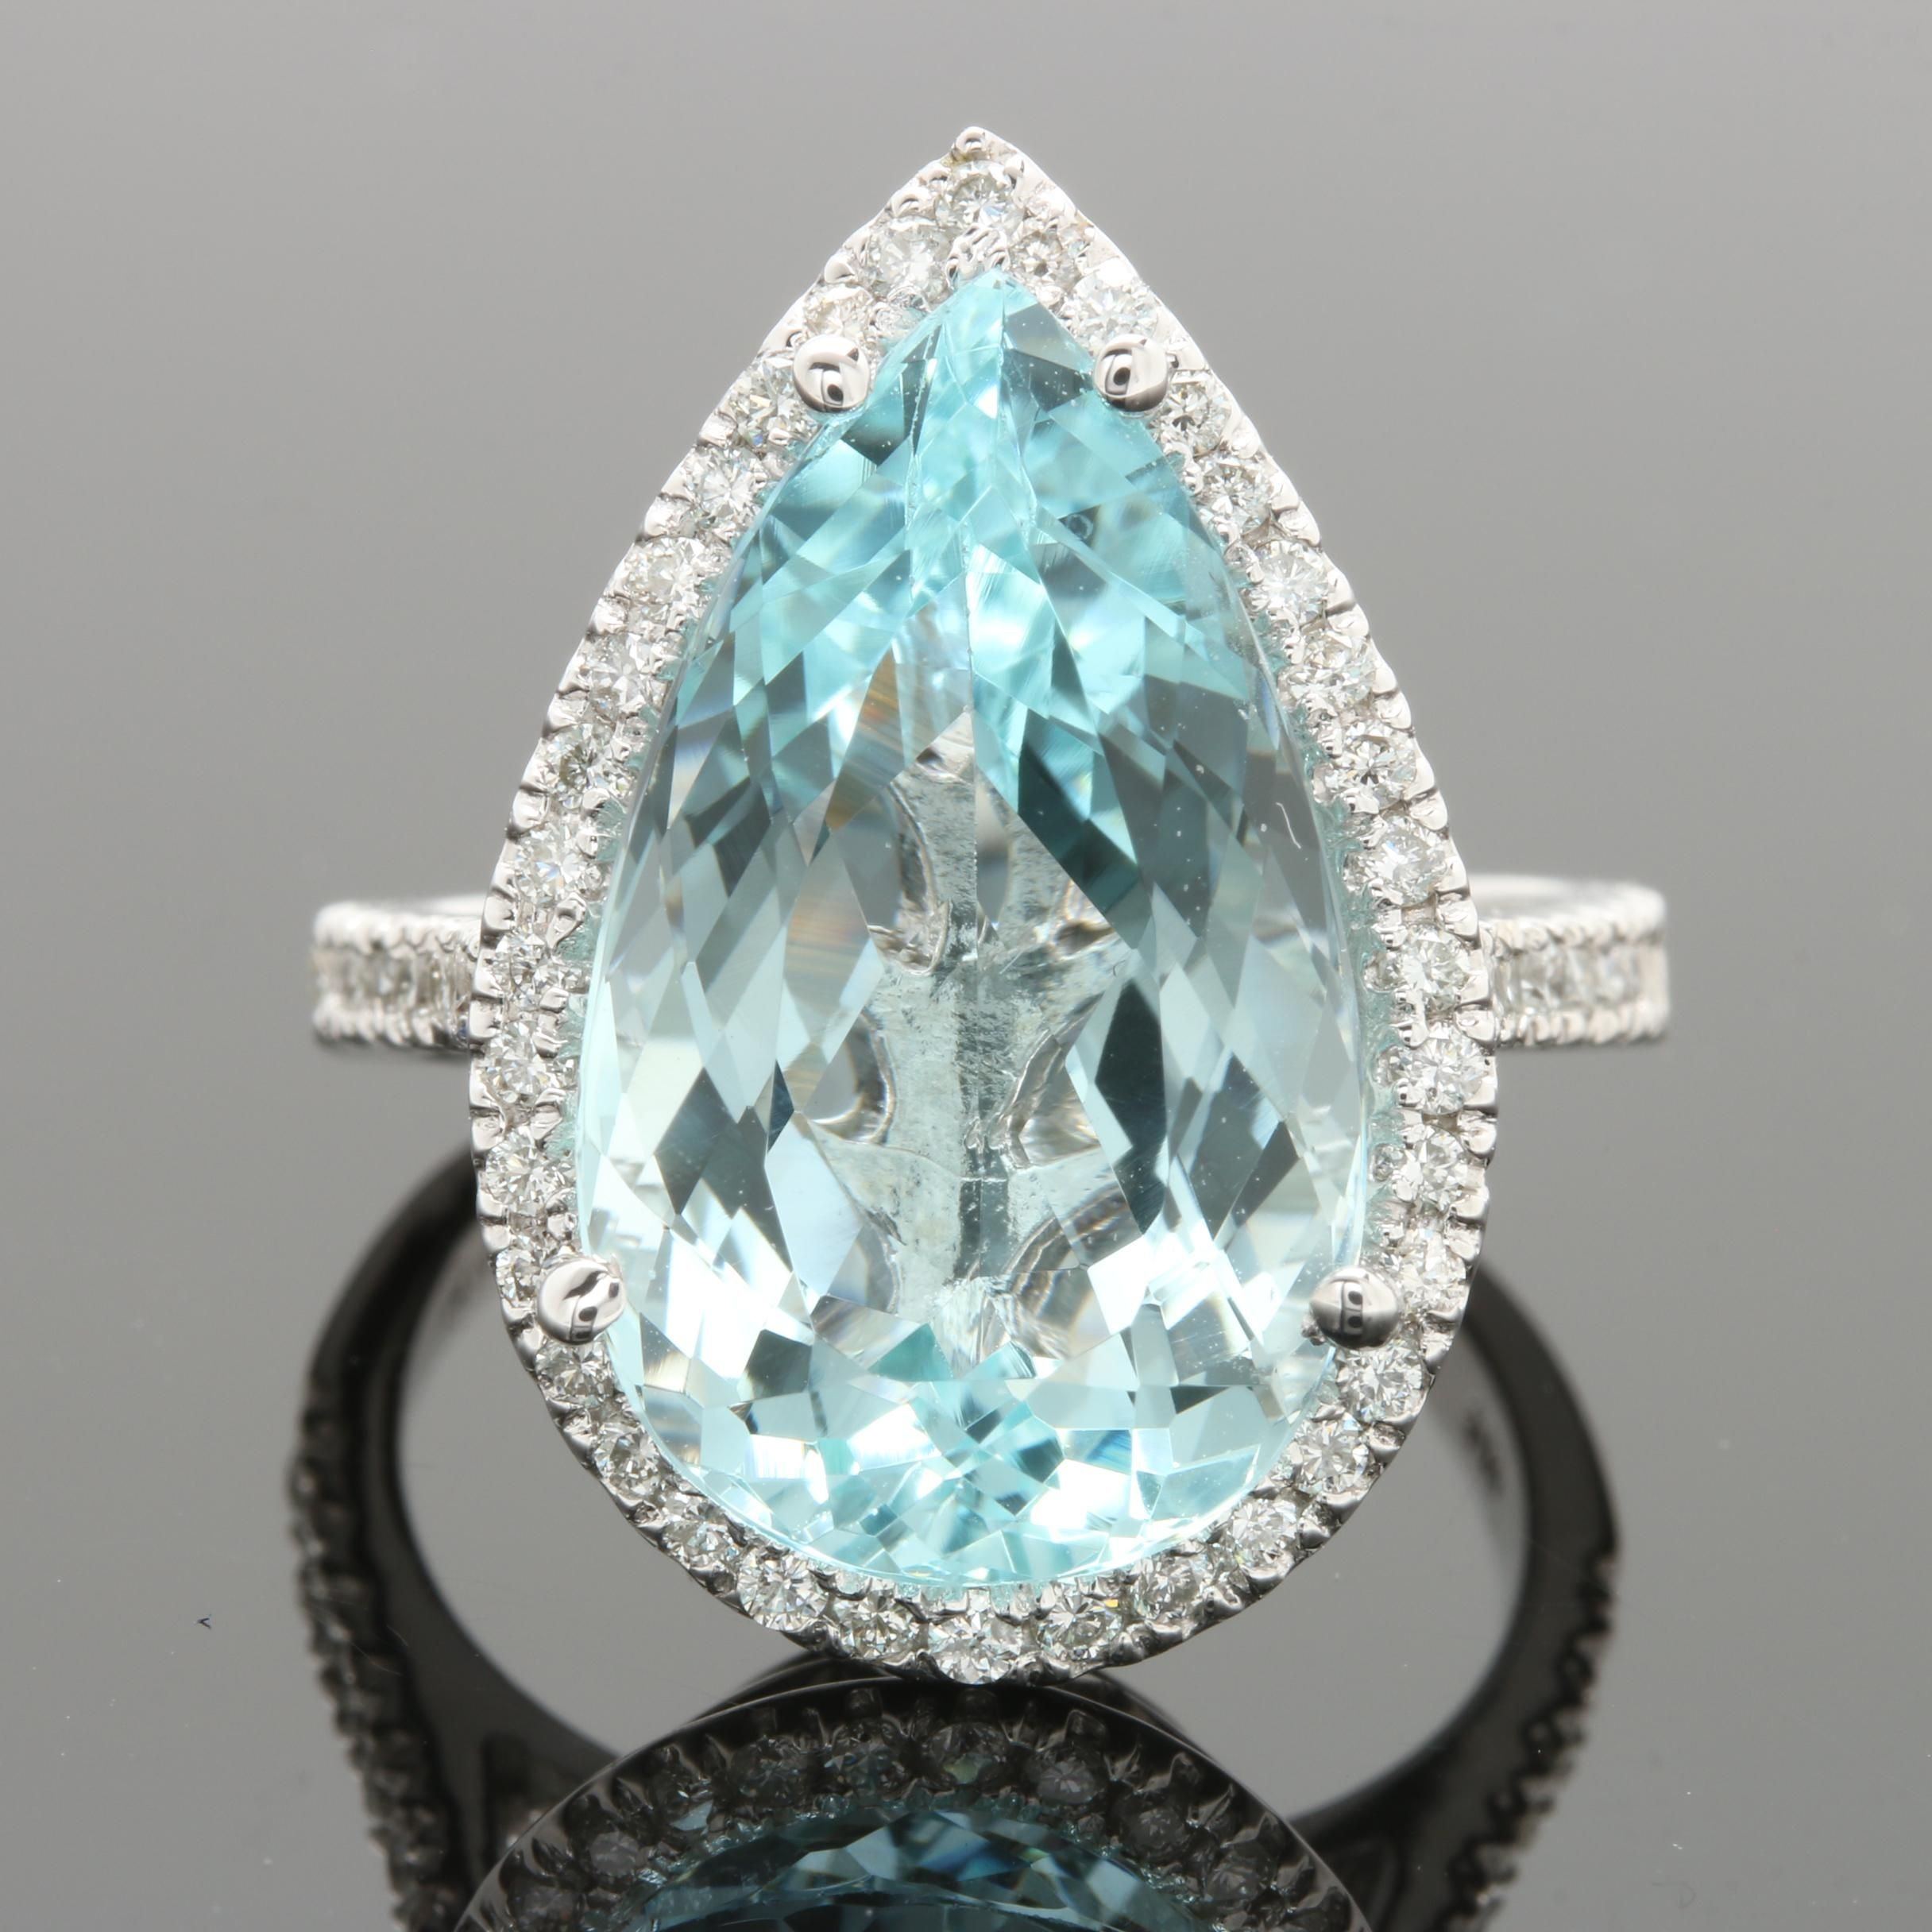 14K White Gold 7.69 CT Aquamarine and Diamond Ring